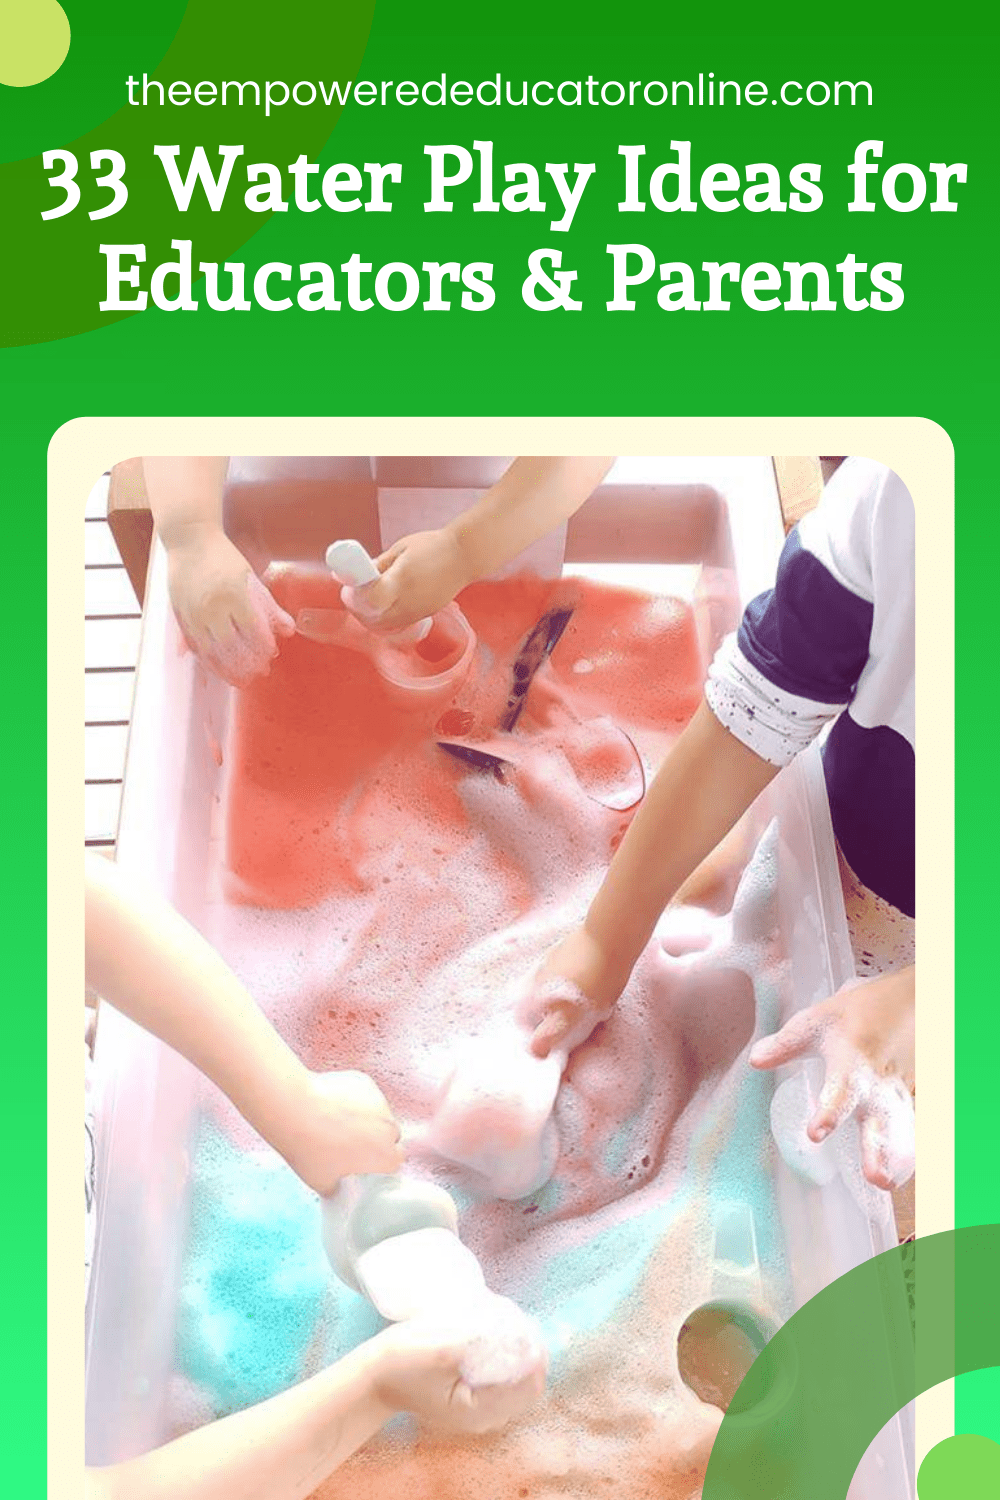 33 Water Play Ideas for Educators and Parents